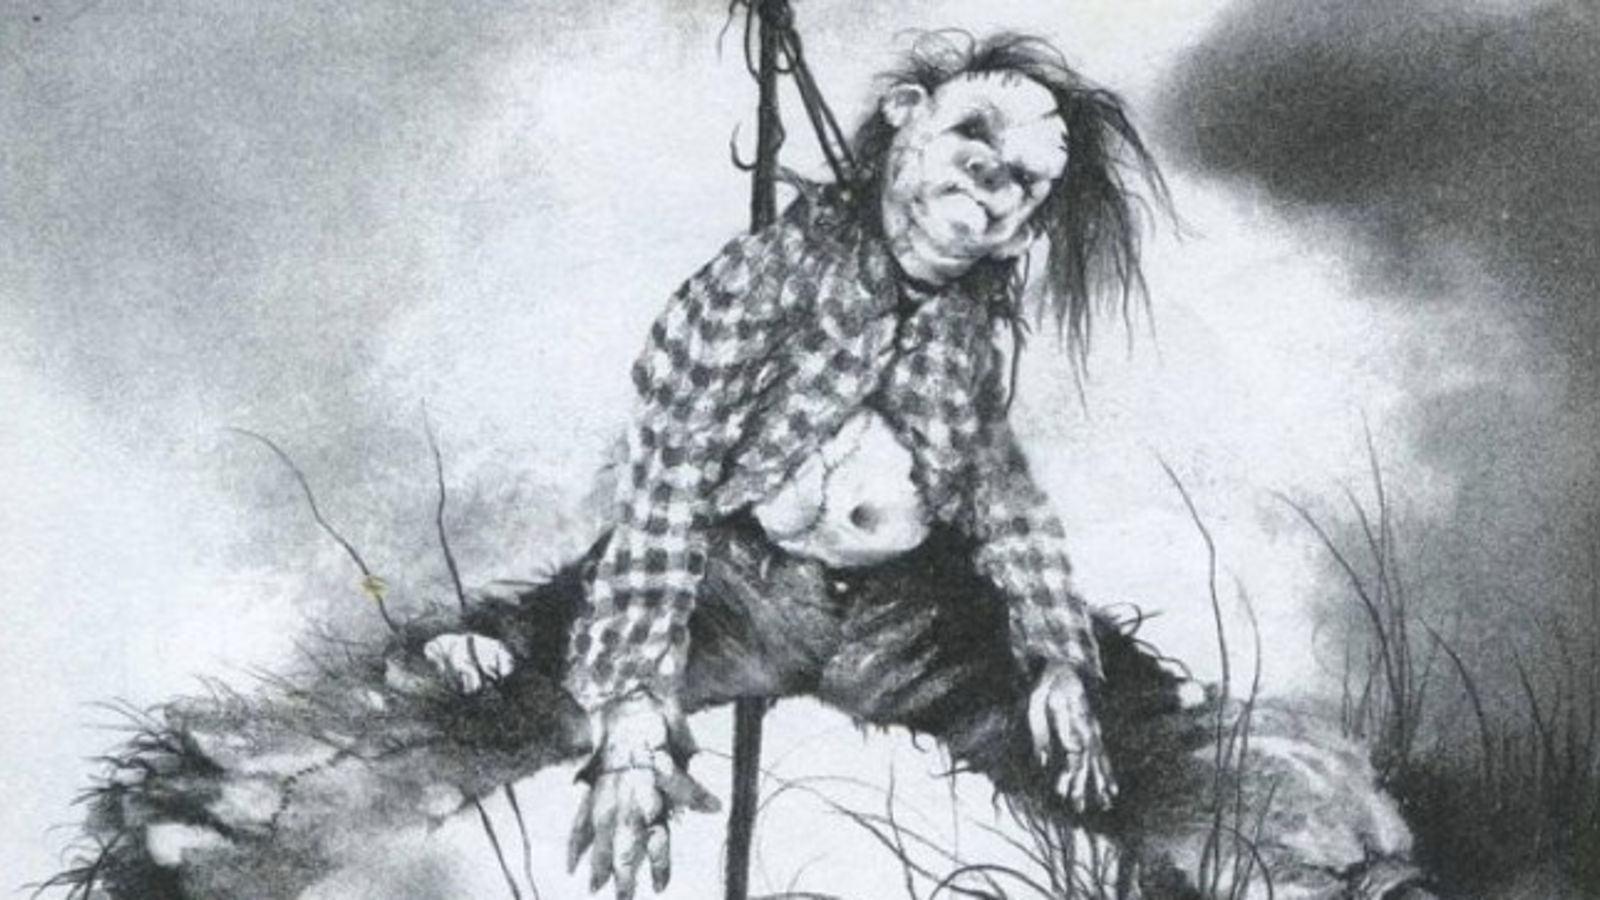 SDCC Panel Recap: SCARY STORIES TO TELL IN THE DARK